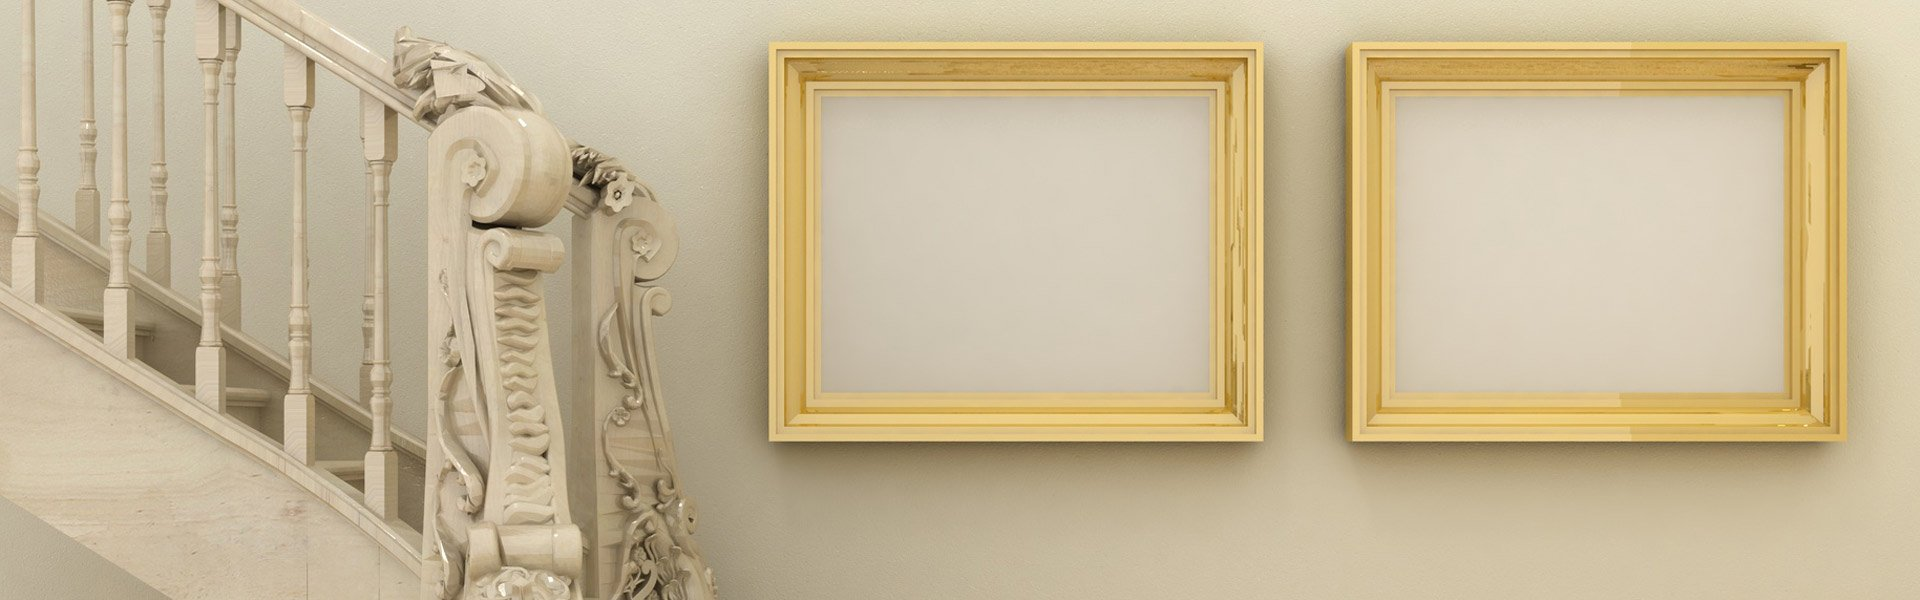 Frames miami picture framing company borders inc jeuxipadfo Choice Image